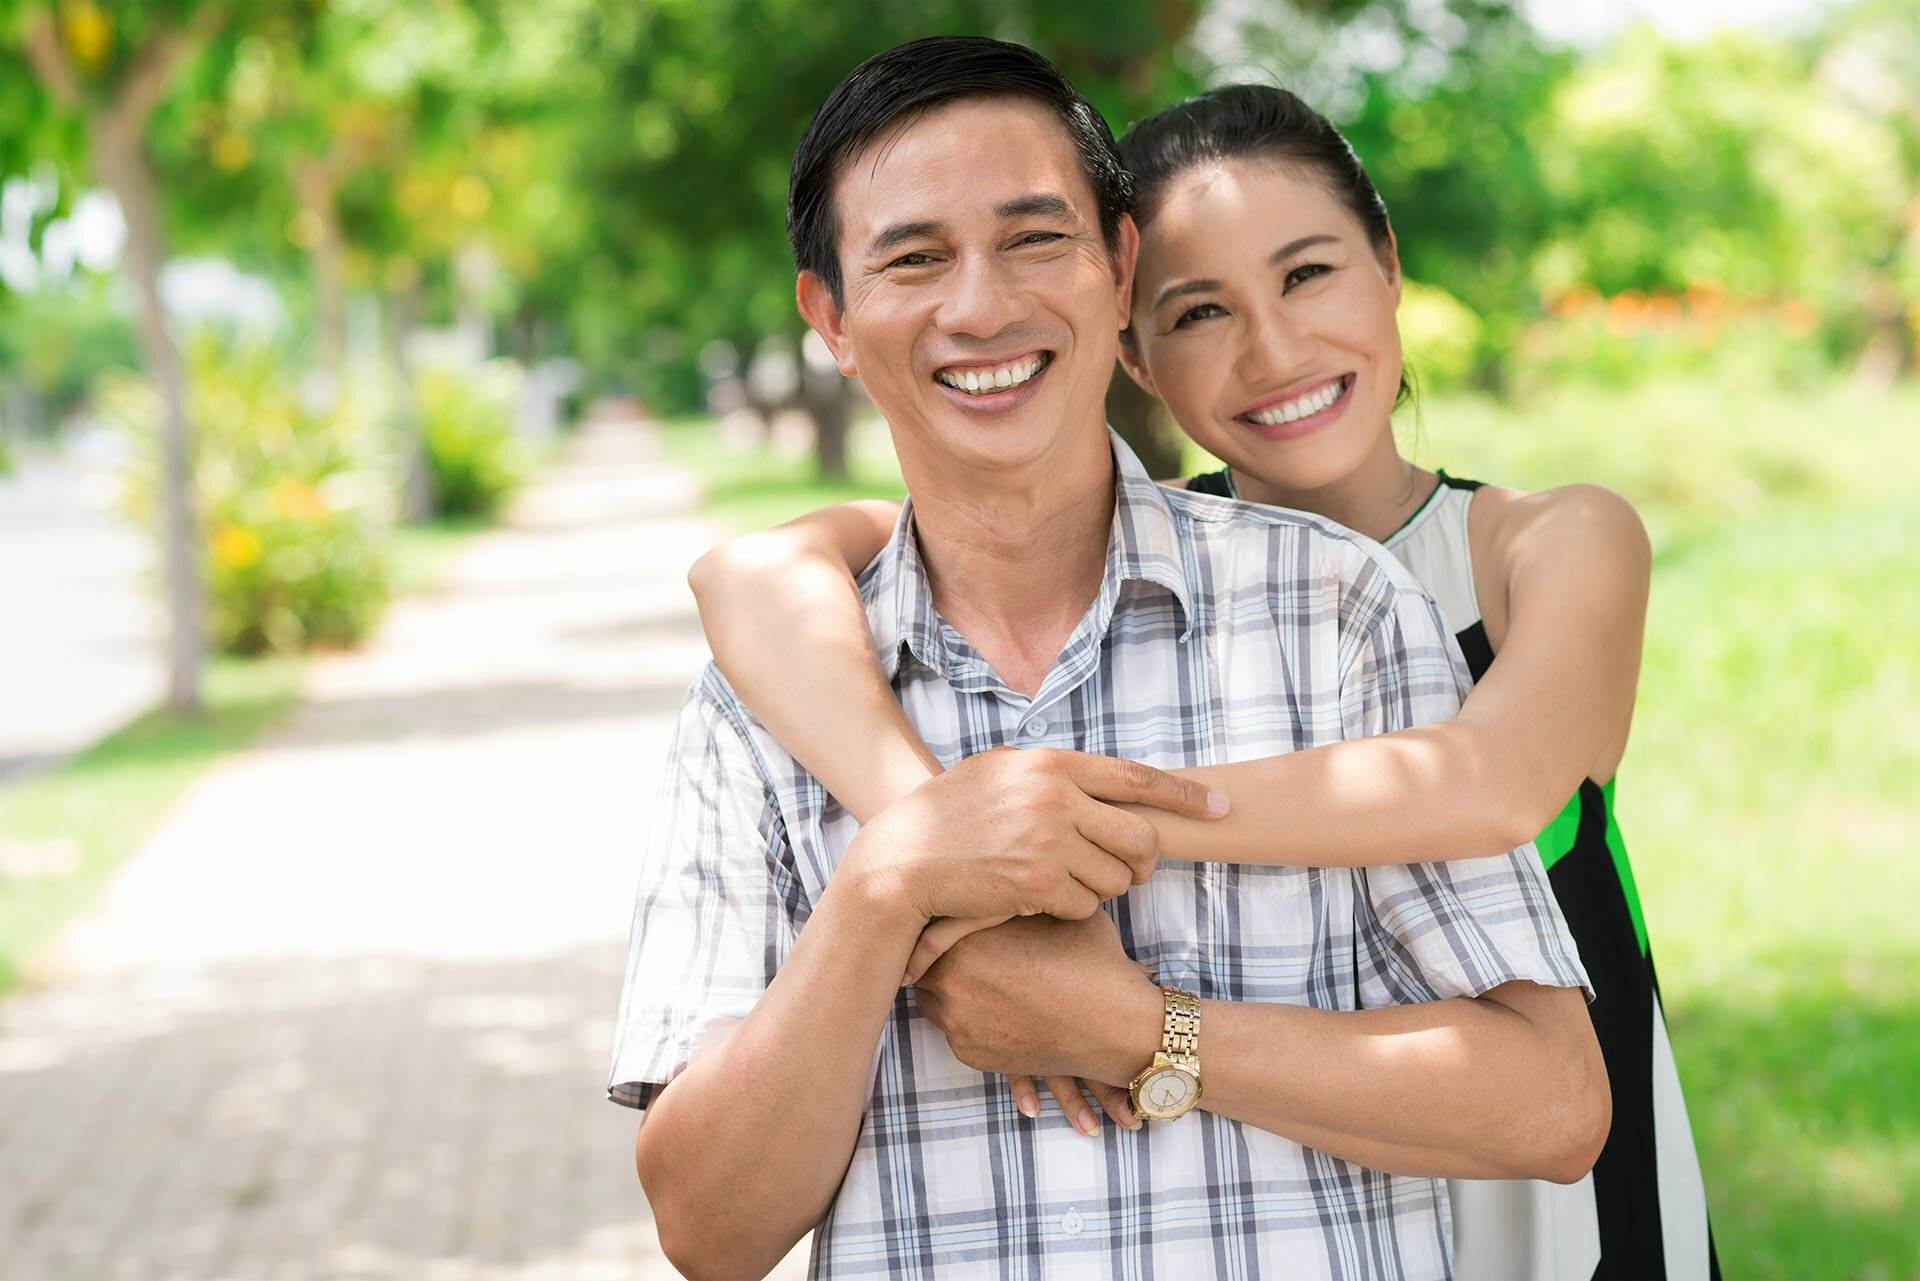 Image of middle-aged Asian couple representing NBS Home Loans clients - best home loans for All Australians